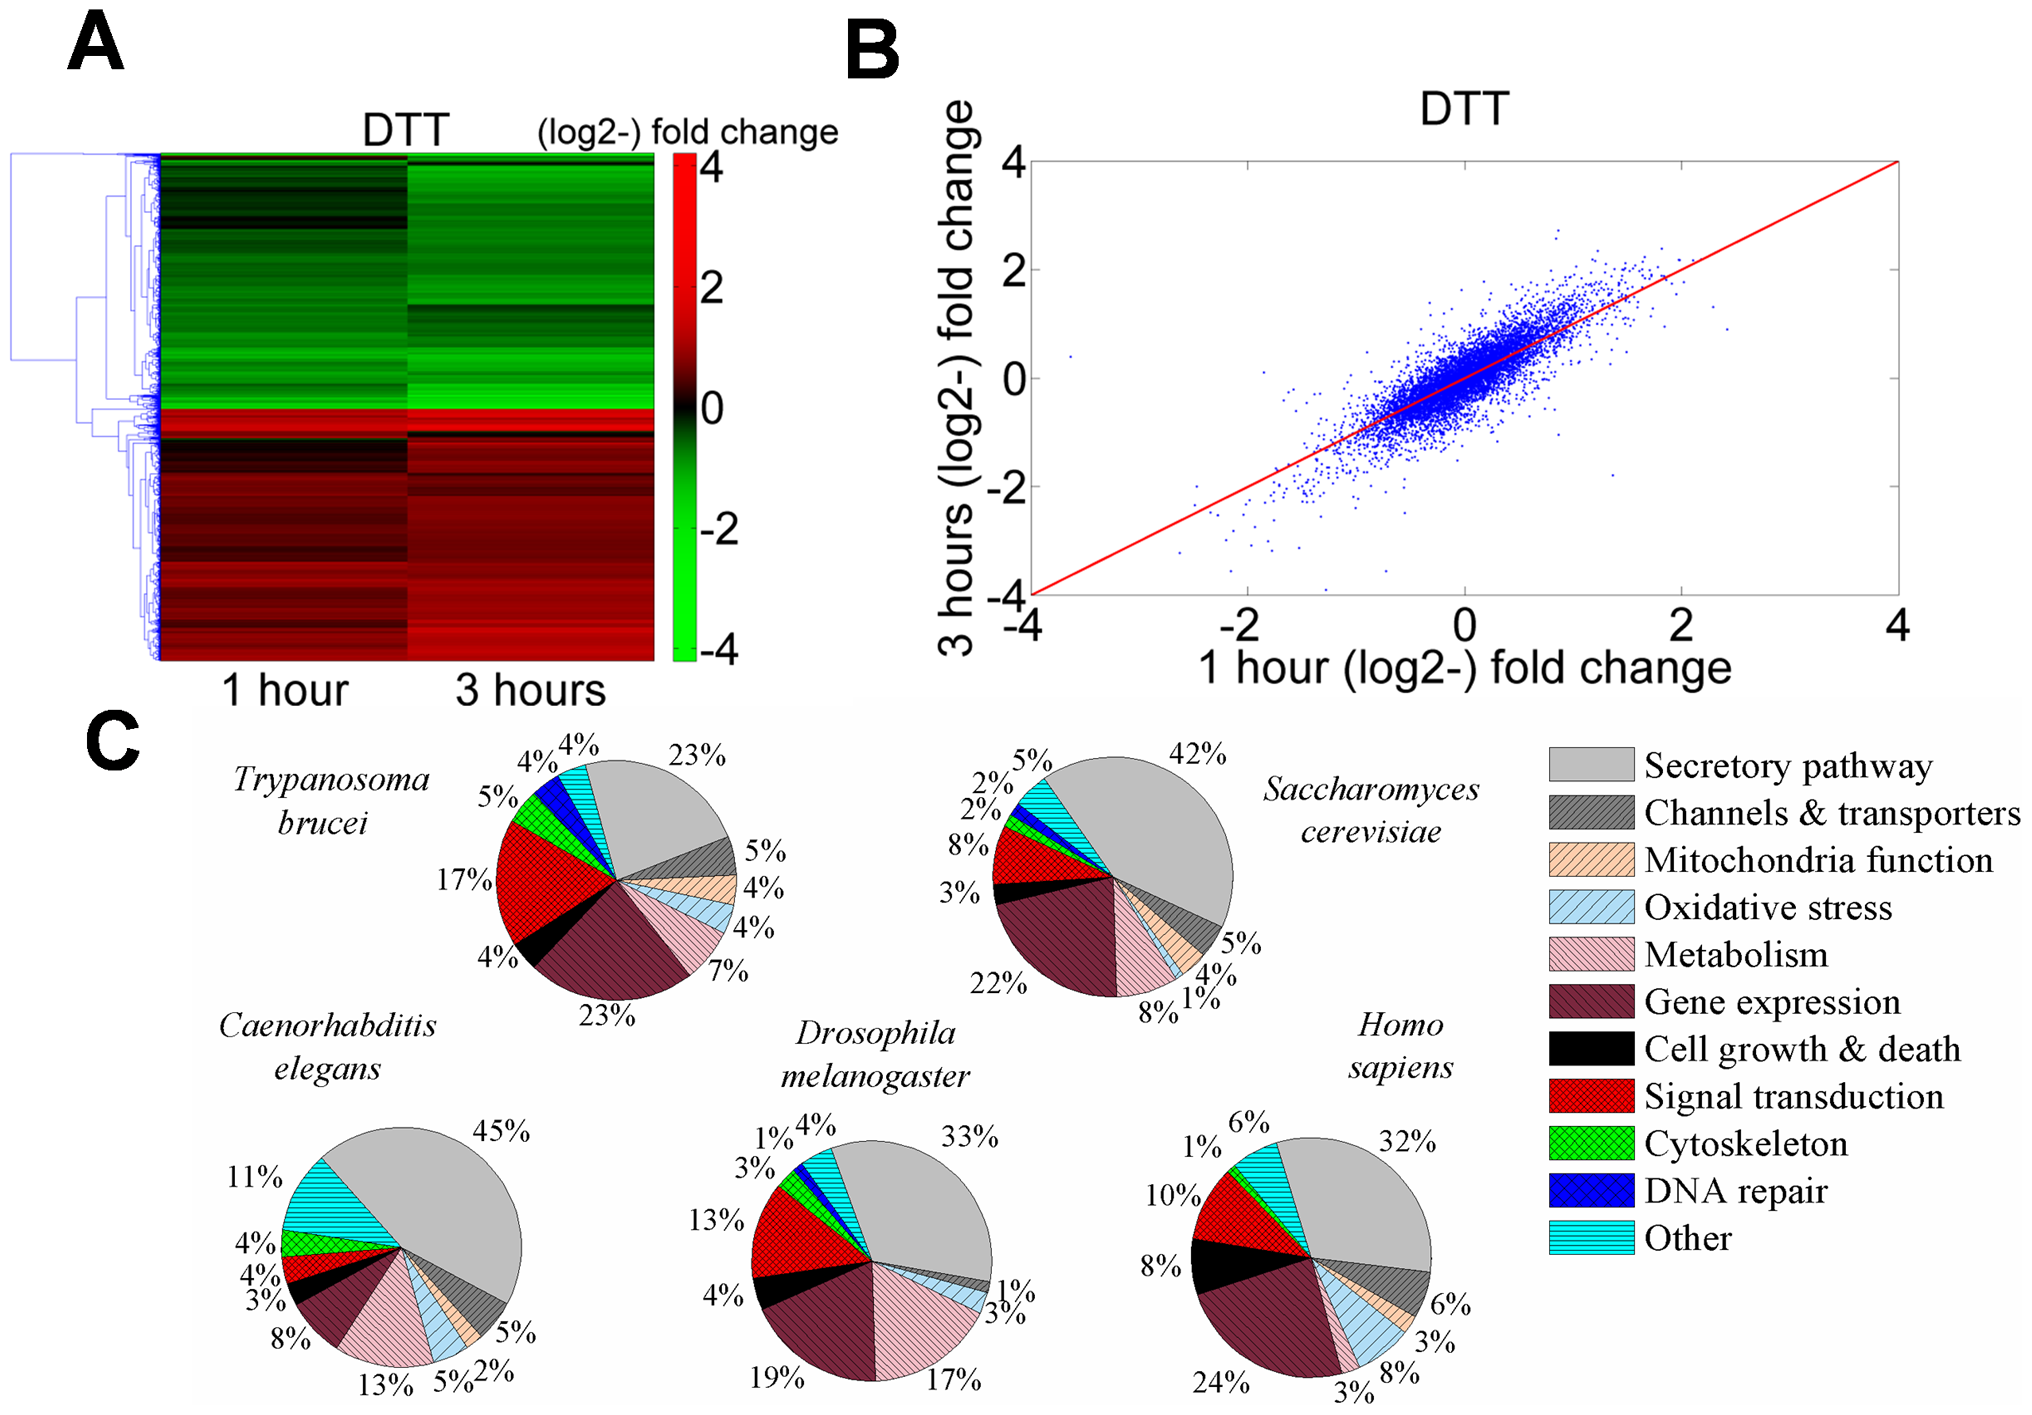 Transcriptome changes in <i>T. brucei</i> treated with DTT resemble analogous changes in other eukaryotes.